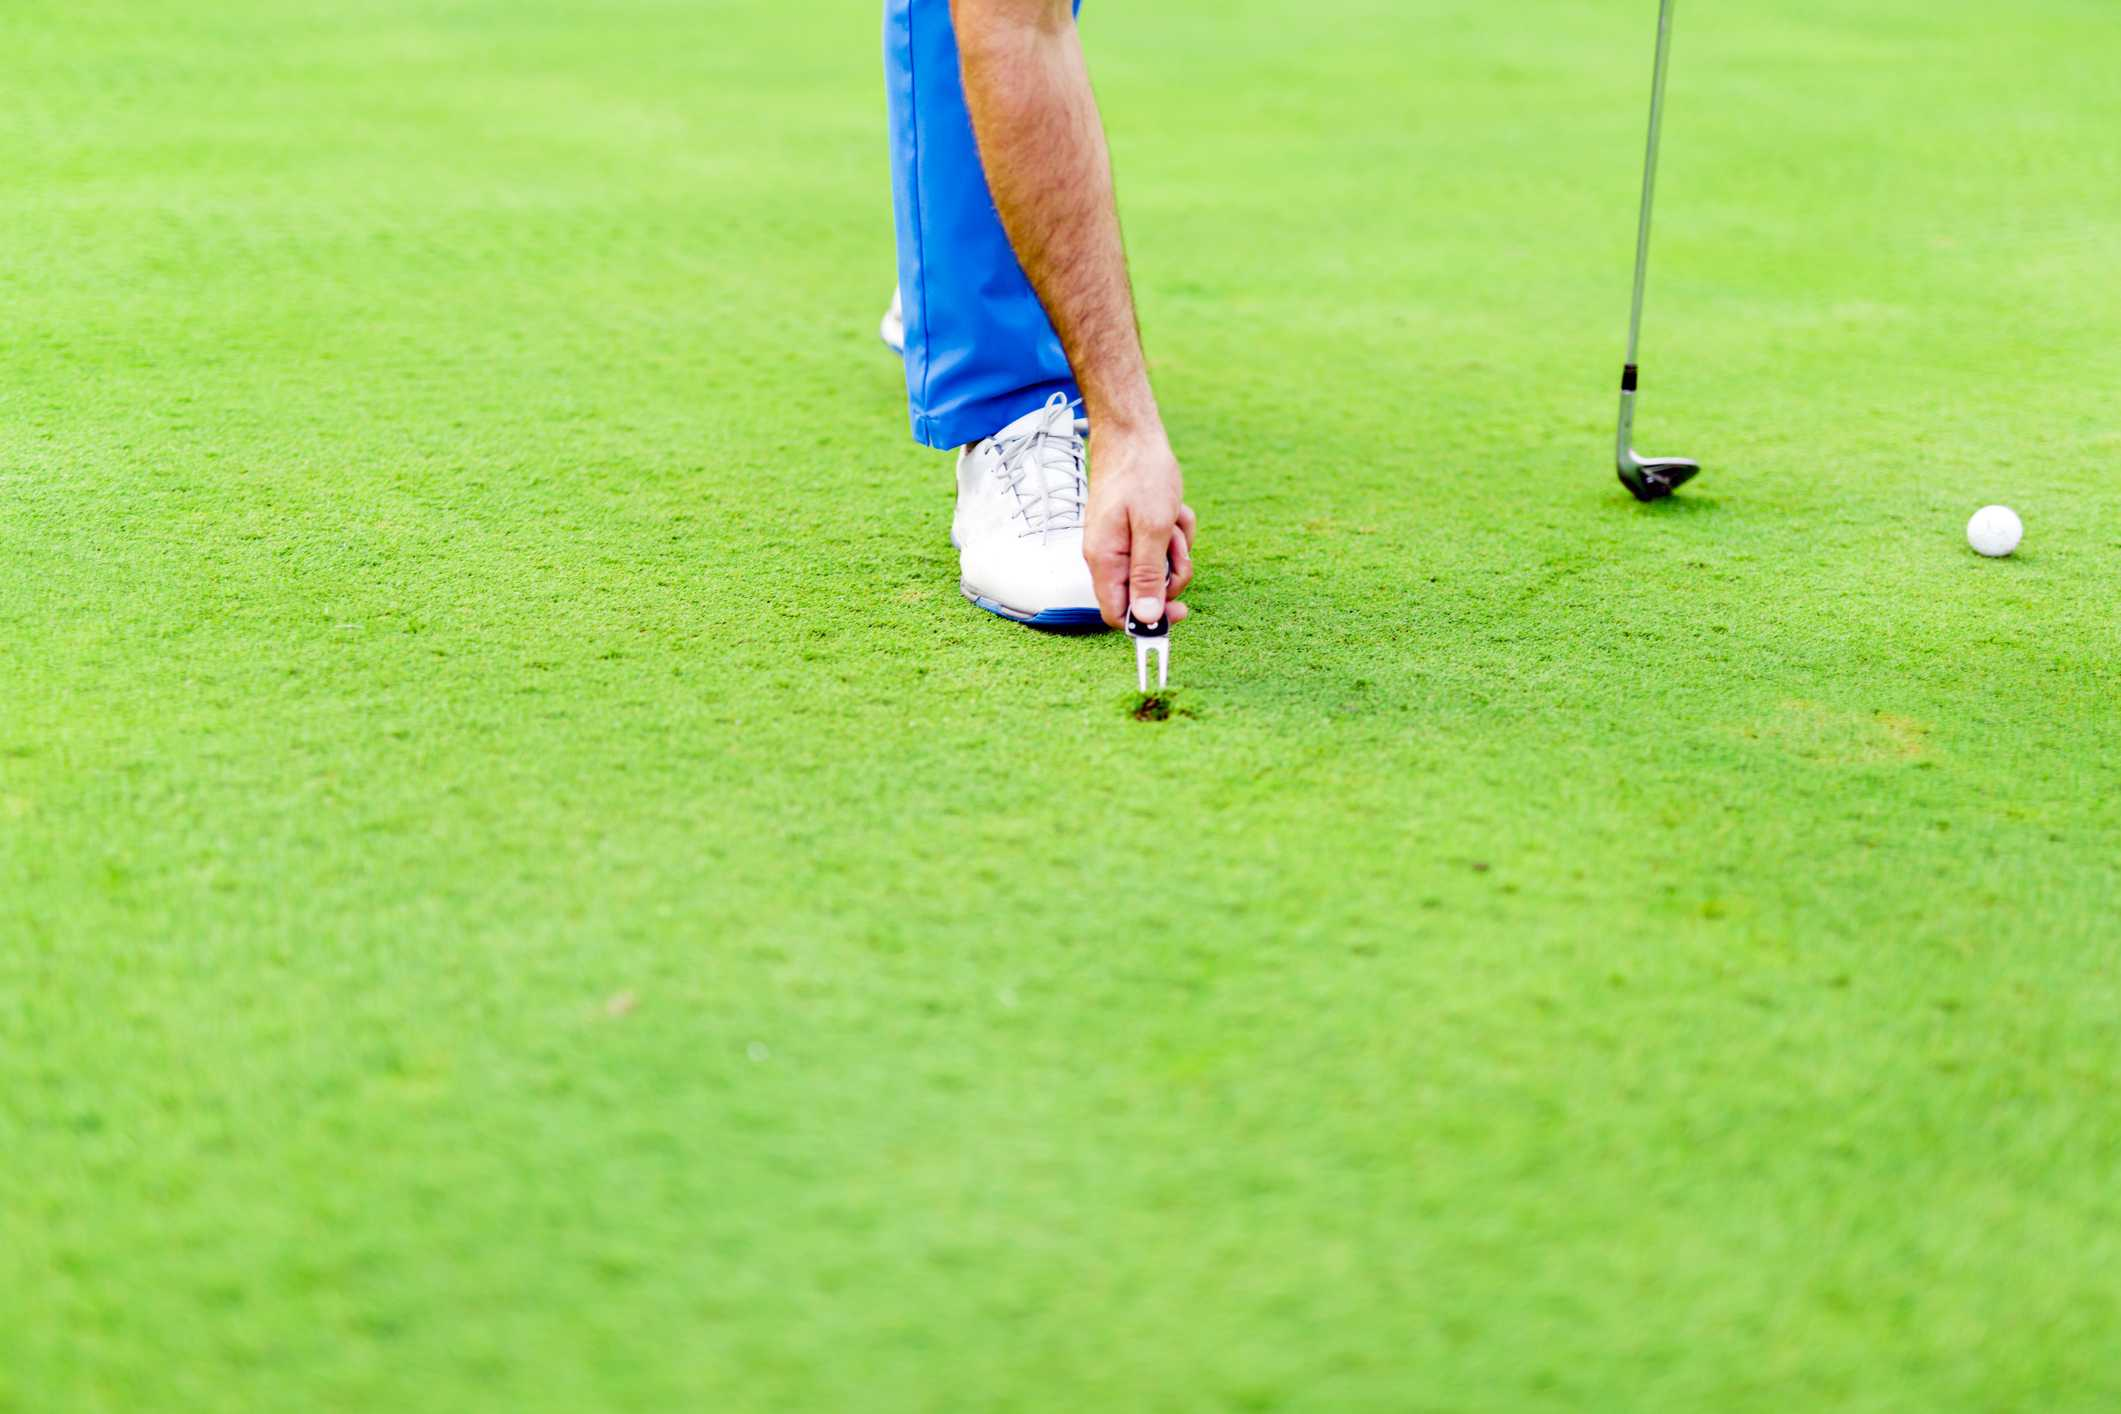 10 Great Golf Gifts and Giveaways for Golf Tournaments